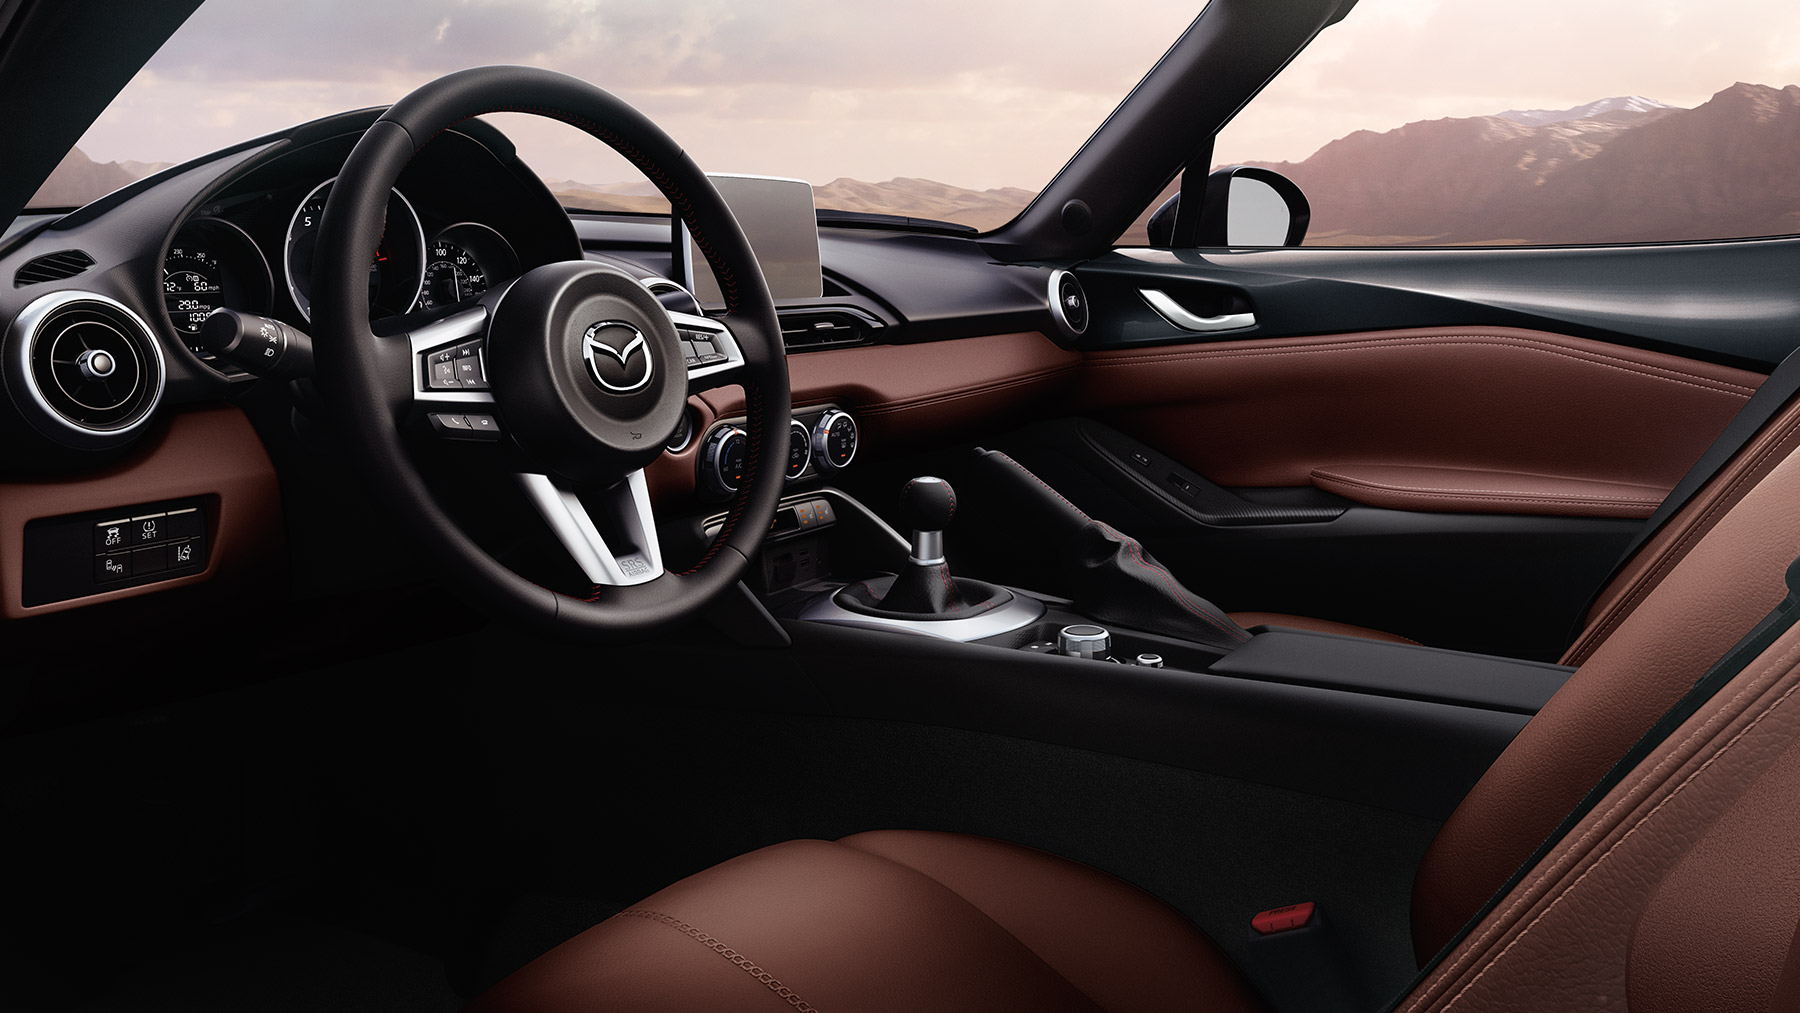 2018-mazda-mx-5-miata-interior-dashboard.jpg